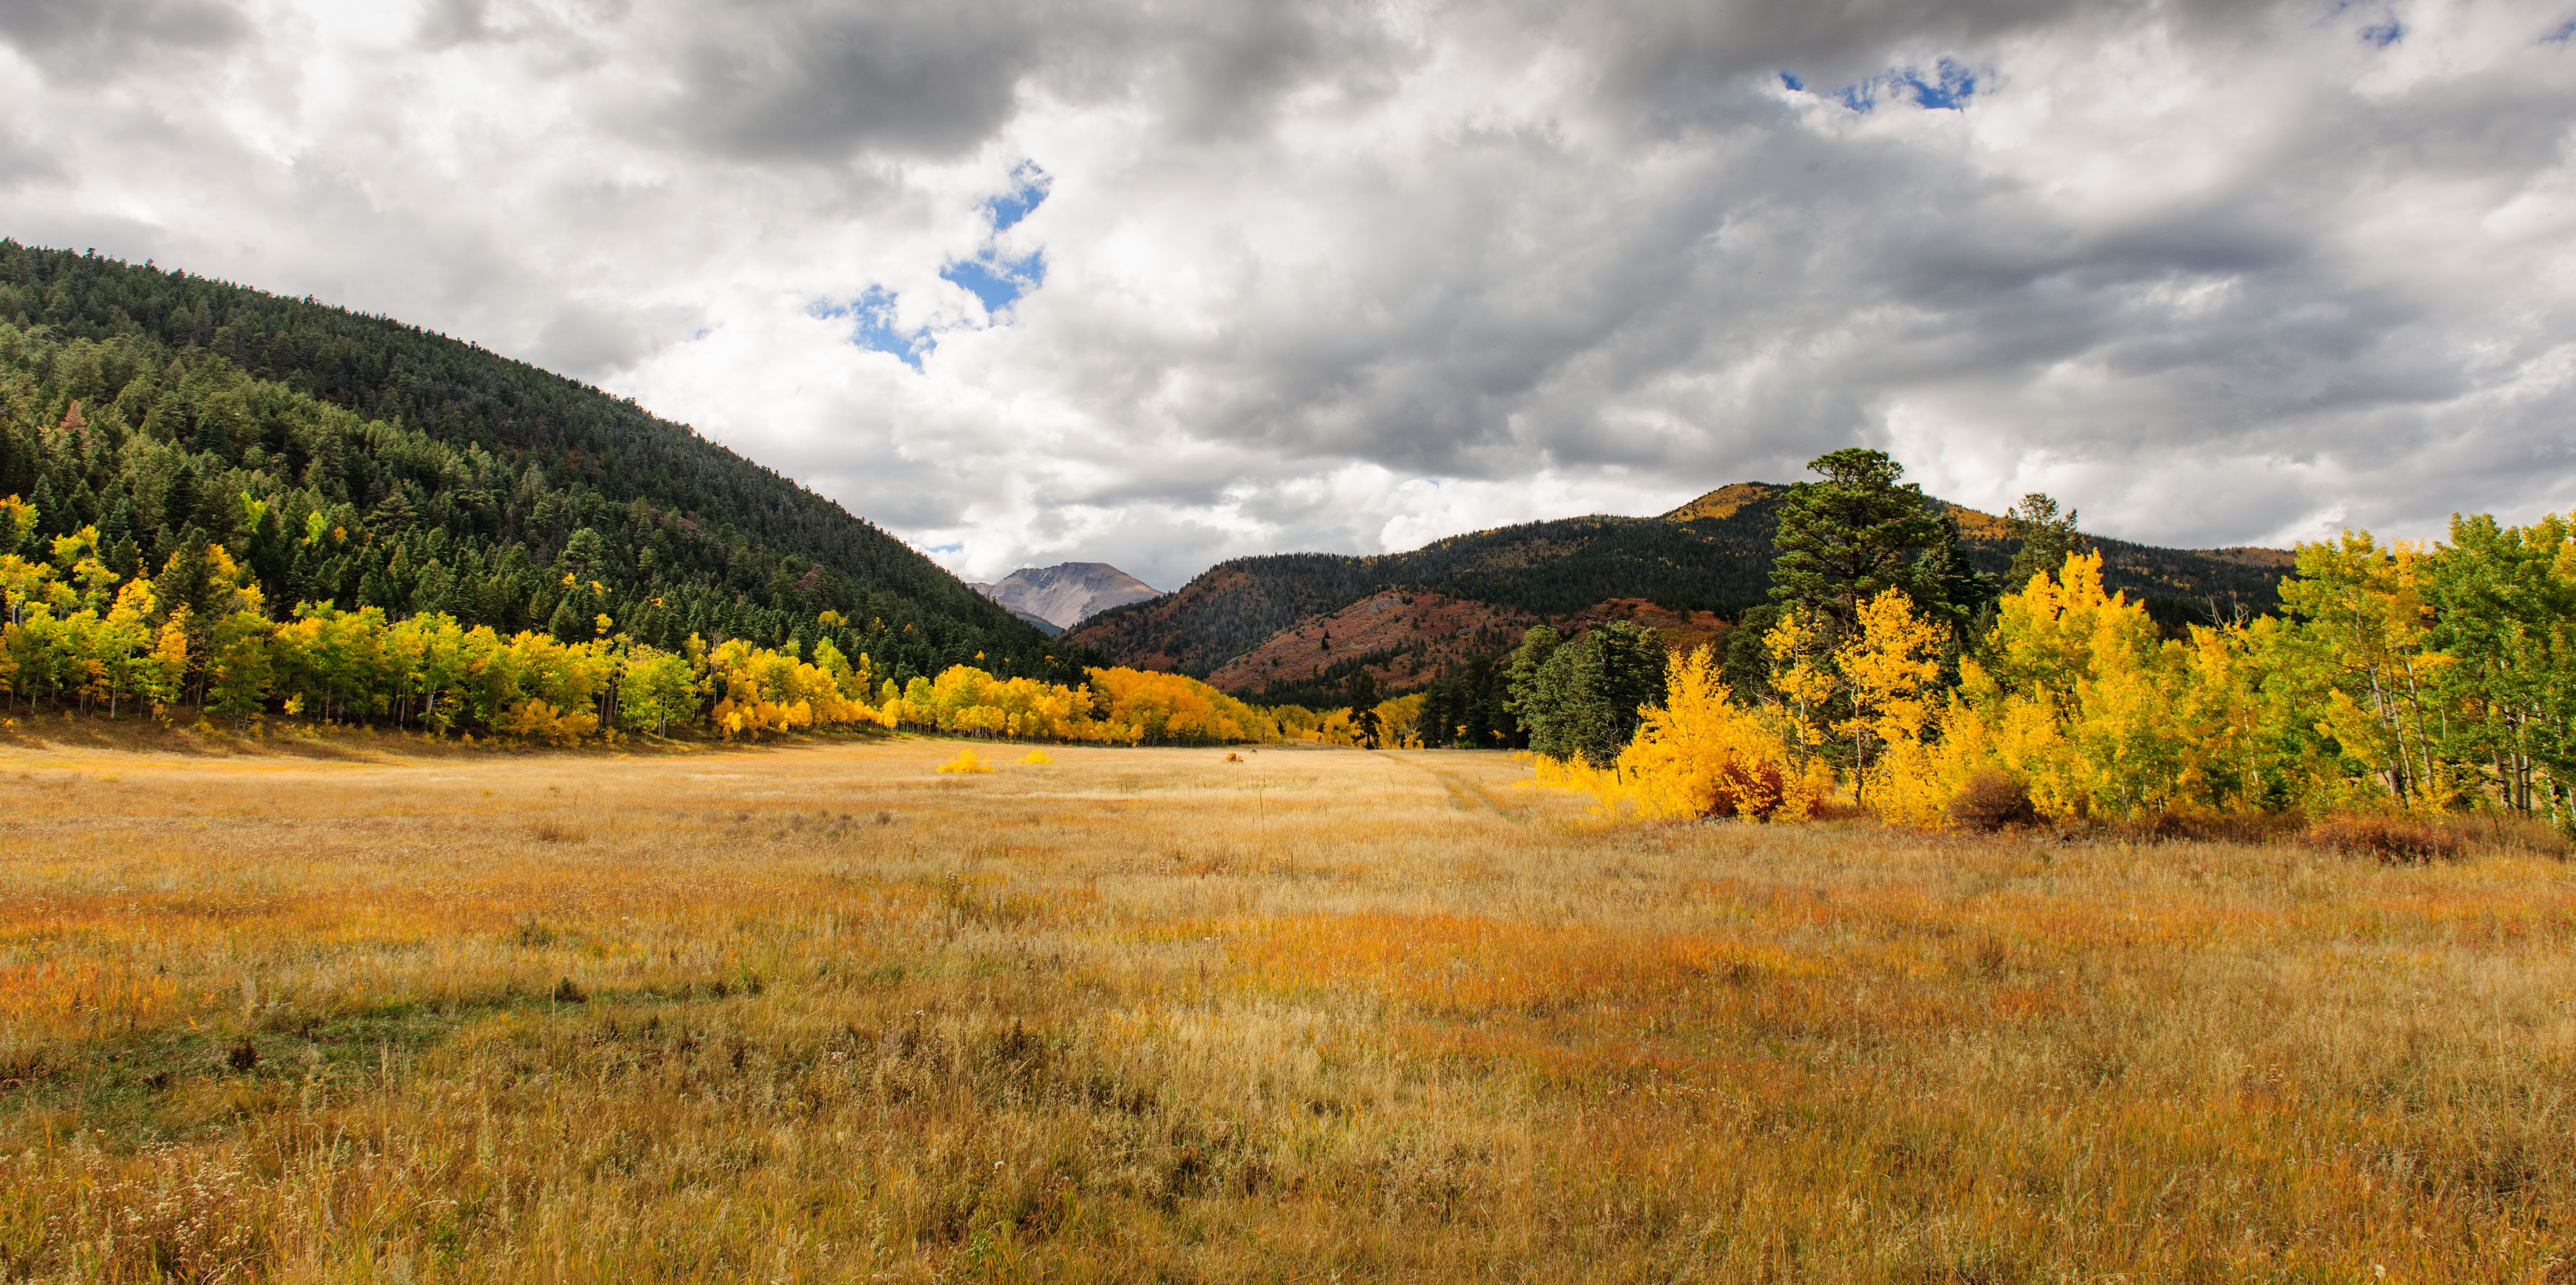 The fall colors along the North Fork Pugatorie River in Southern Colorado. Cuatro Peak in the distant [Nikon D3x]